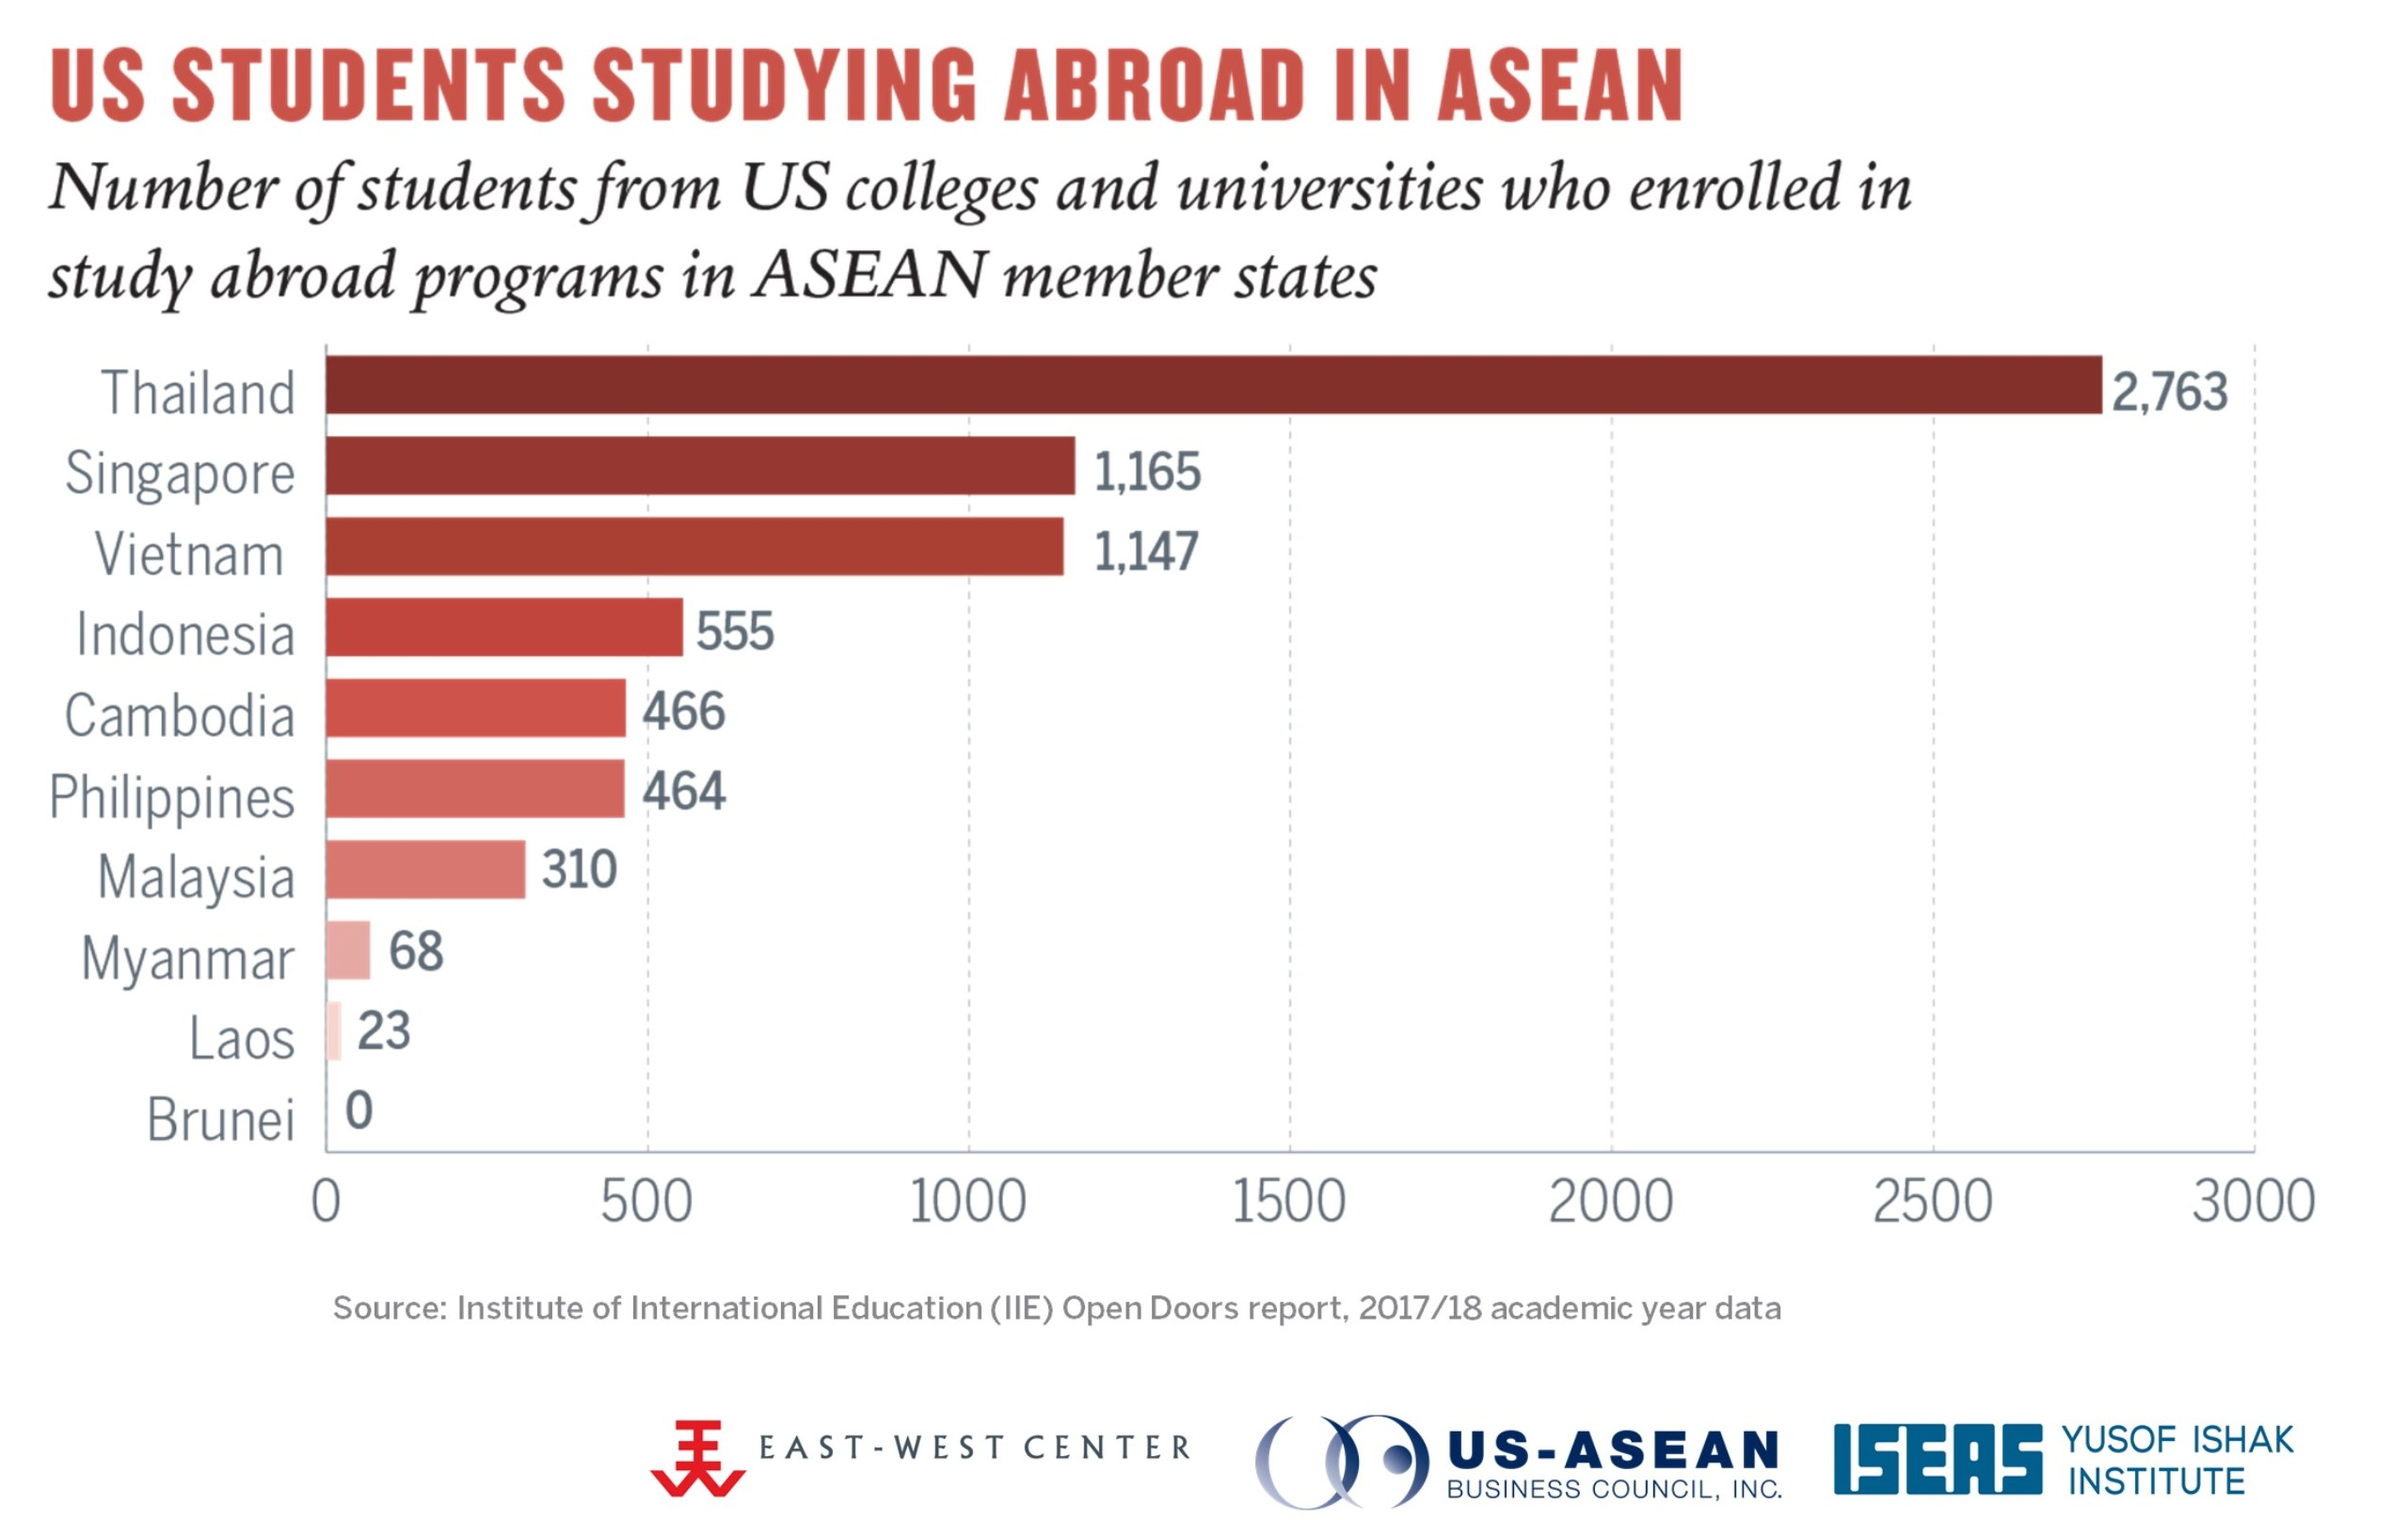 US Students Studying Abroad in ASEAN